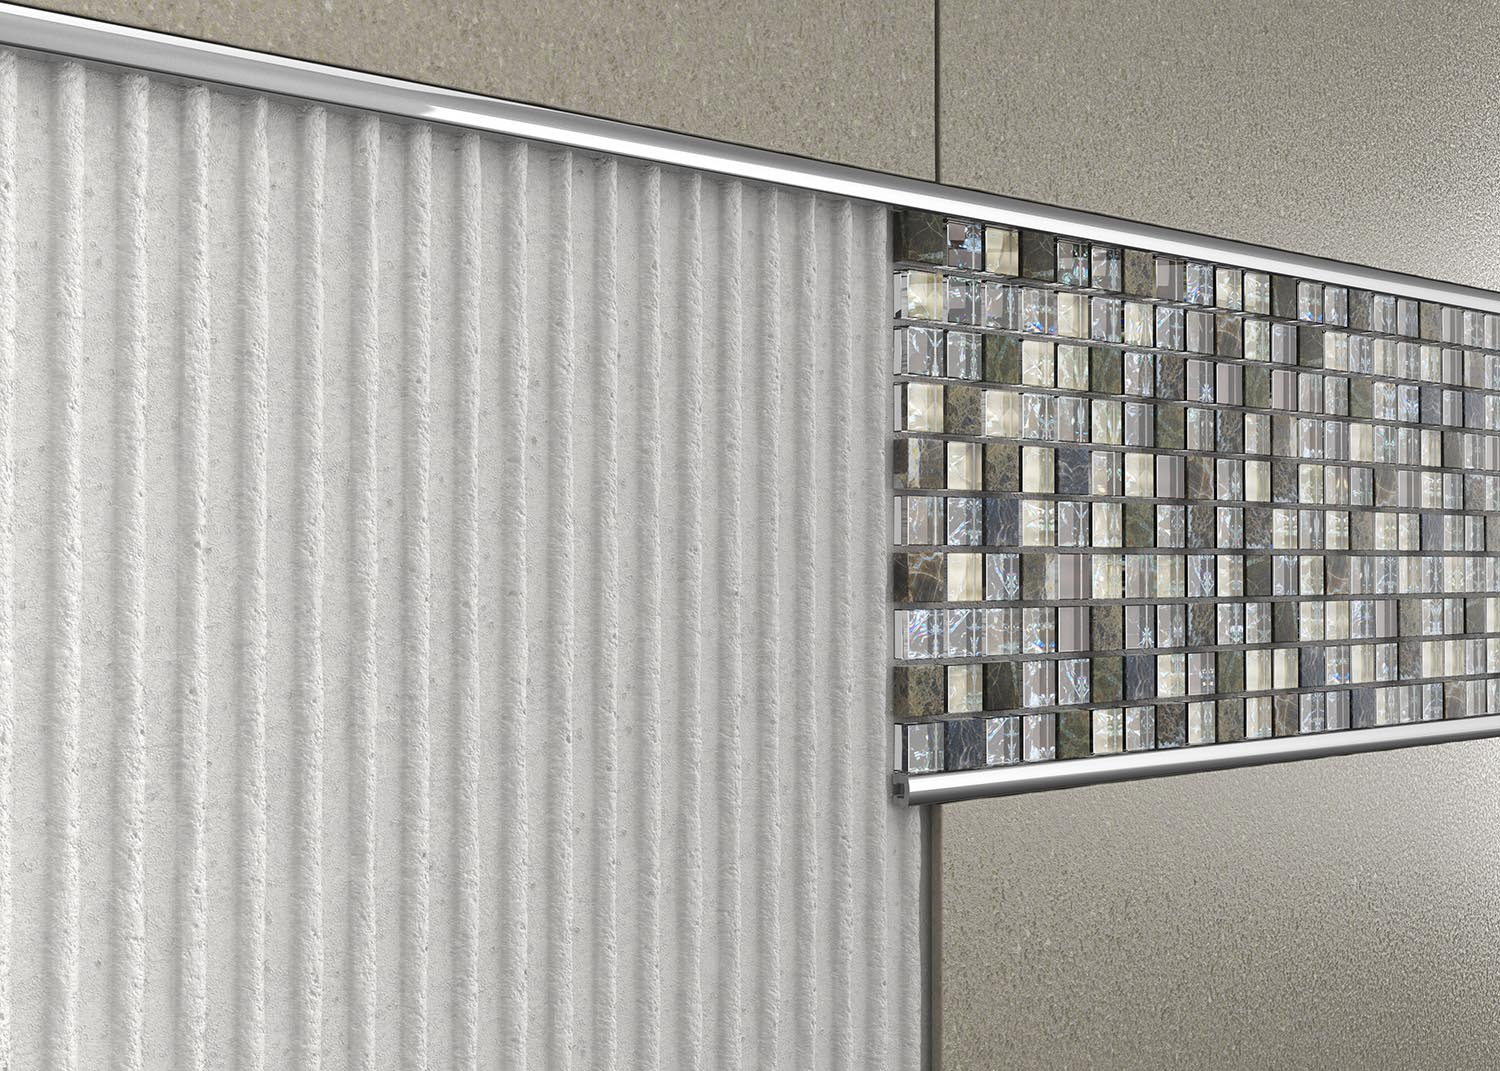 Pencil and Listello bars will add style and decoration to plain tiled areas. Perfect for making a feature with mosaic tiles.